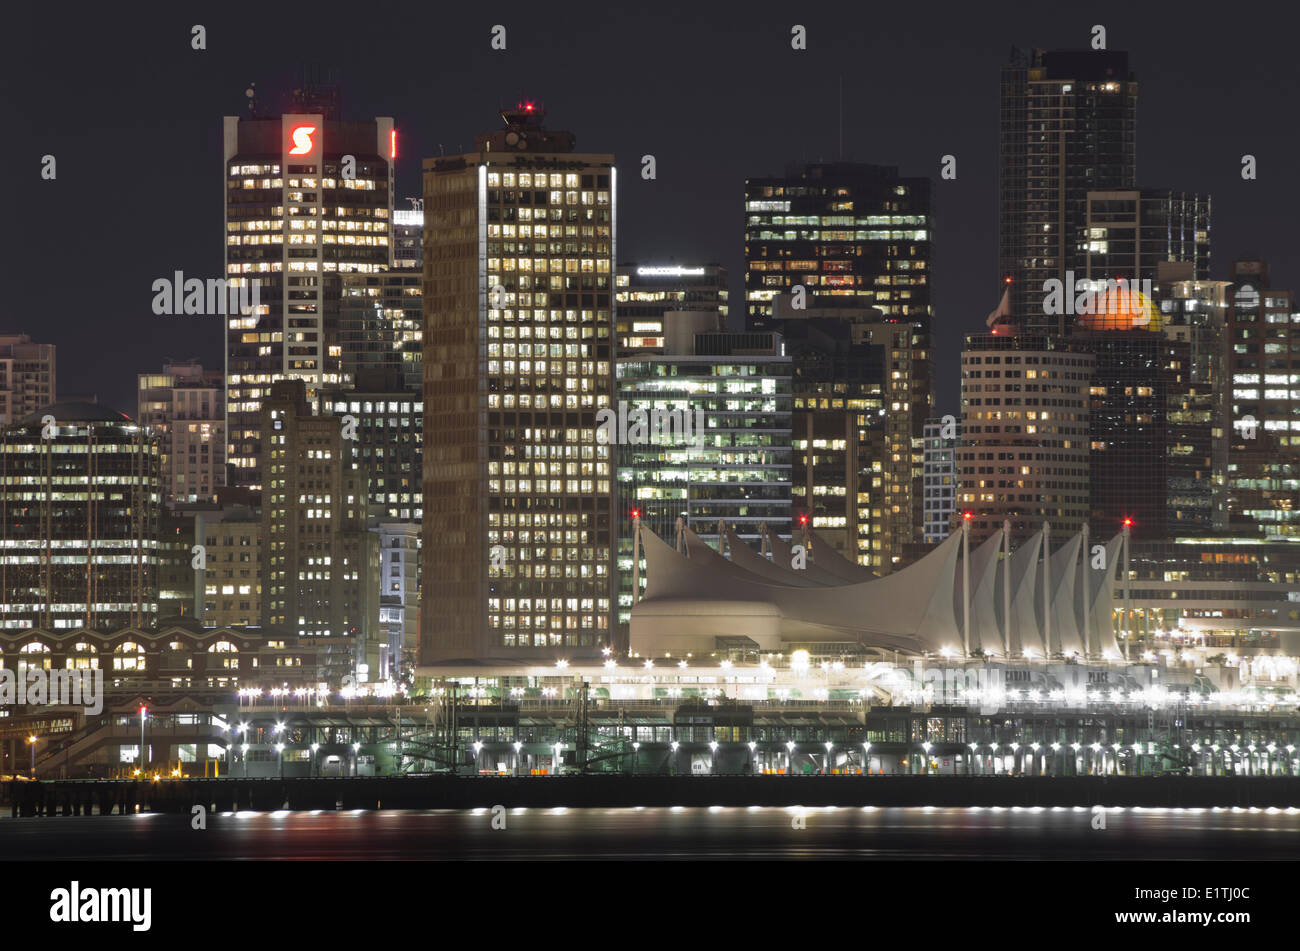 Canada Place and high-rises at night, downtown Vancouver, British Columbia, Canada. - Stock Image